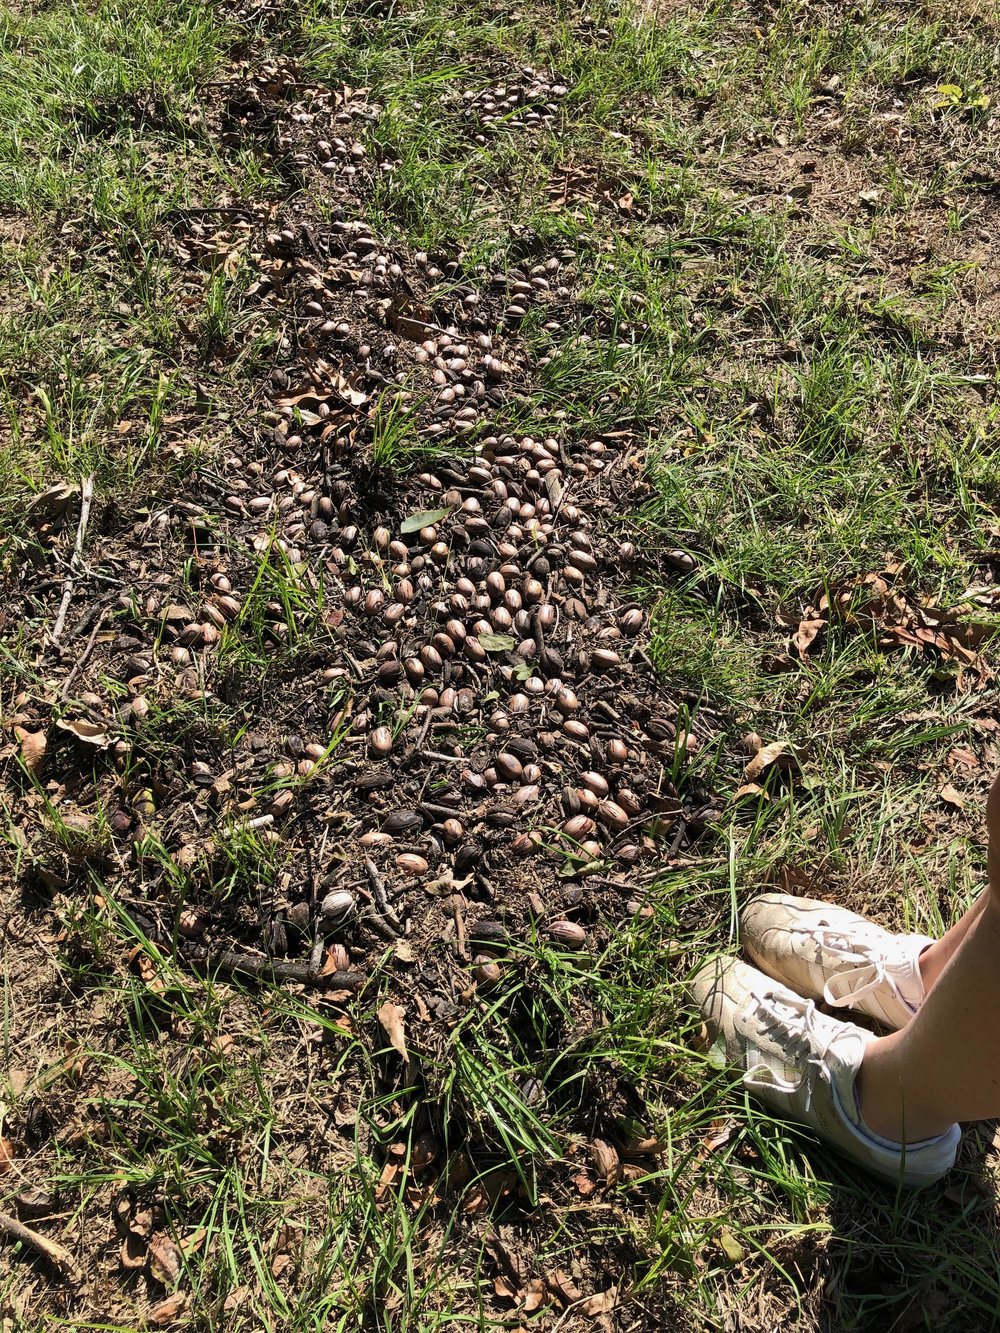 Floods of water carried nuts into neat rows, almost like they'd been blown that way